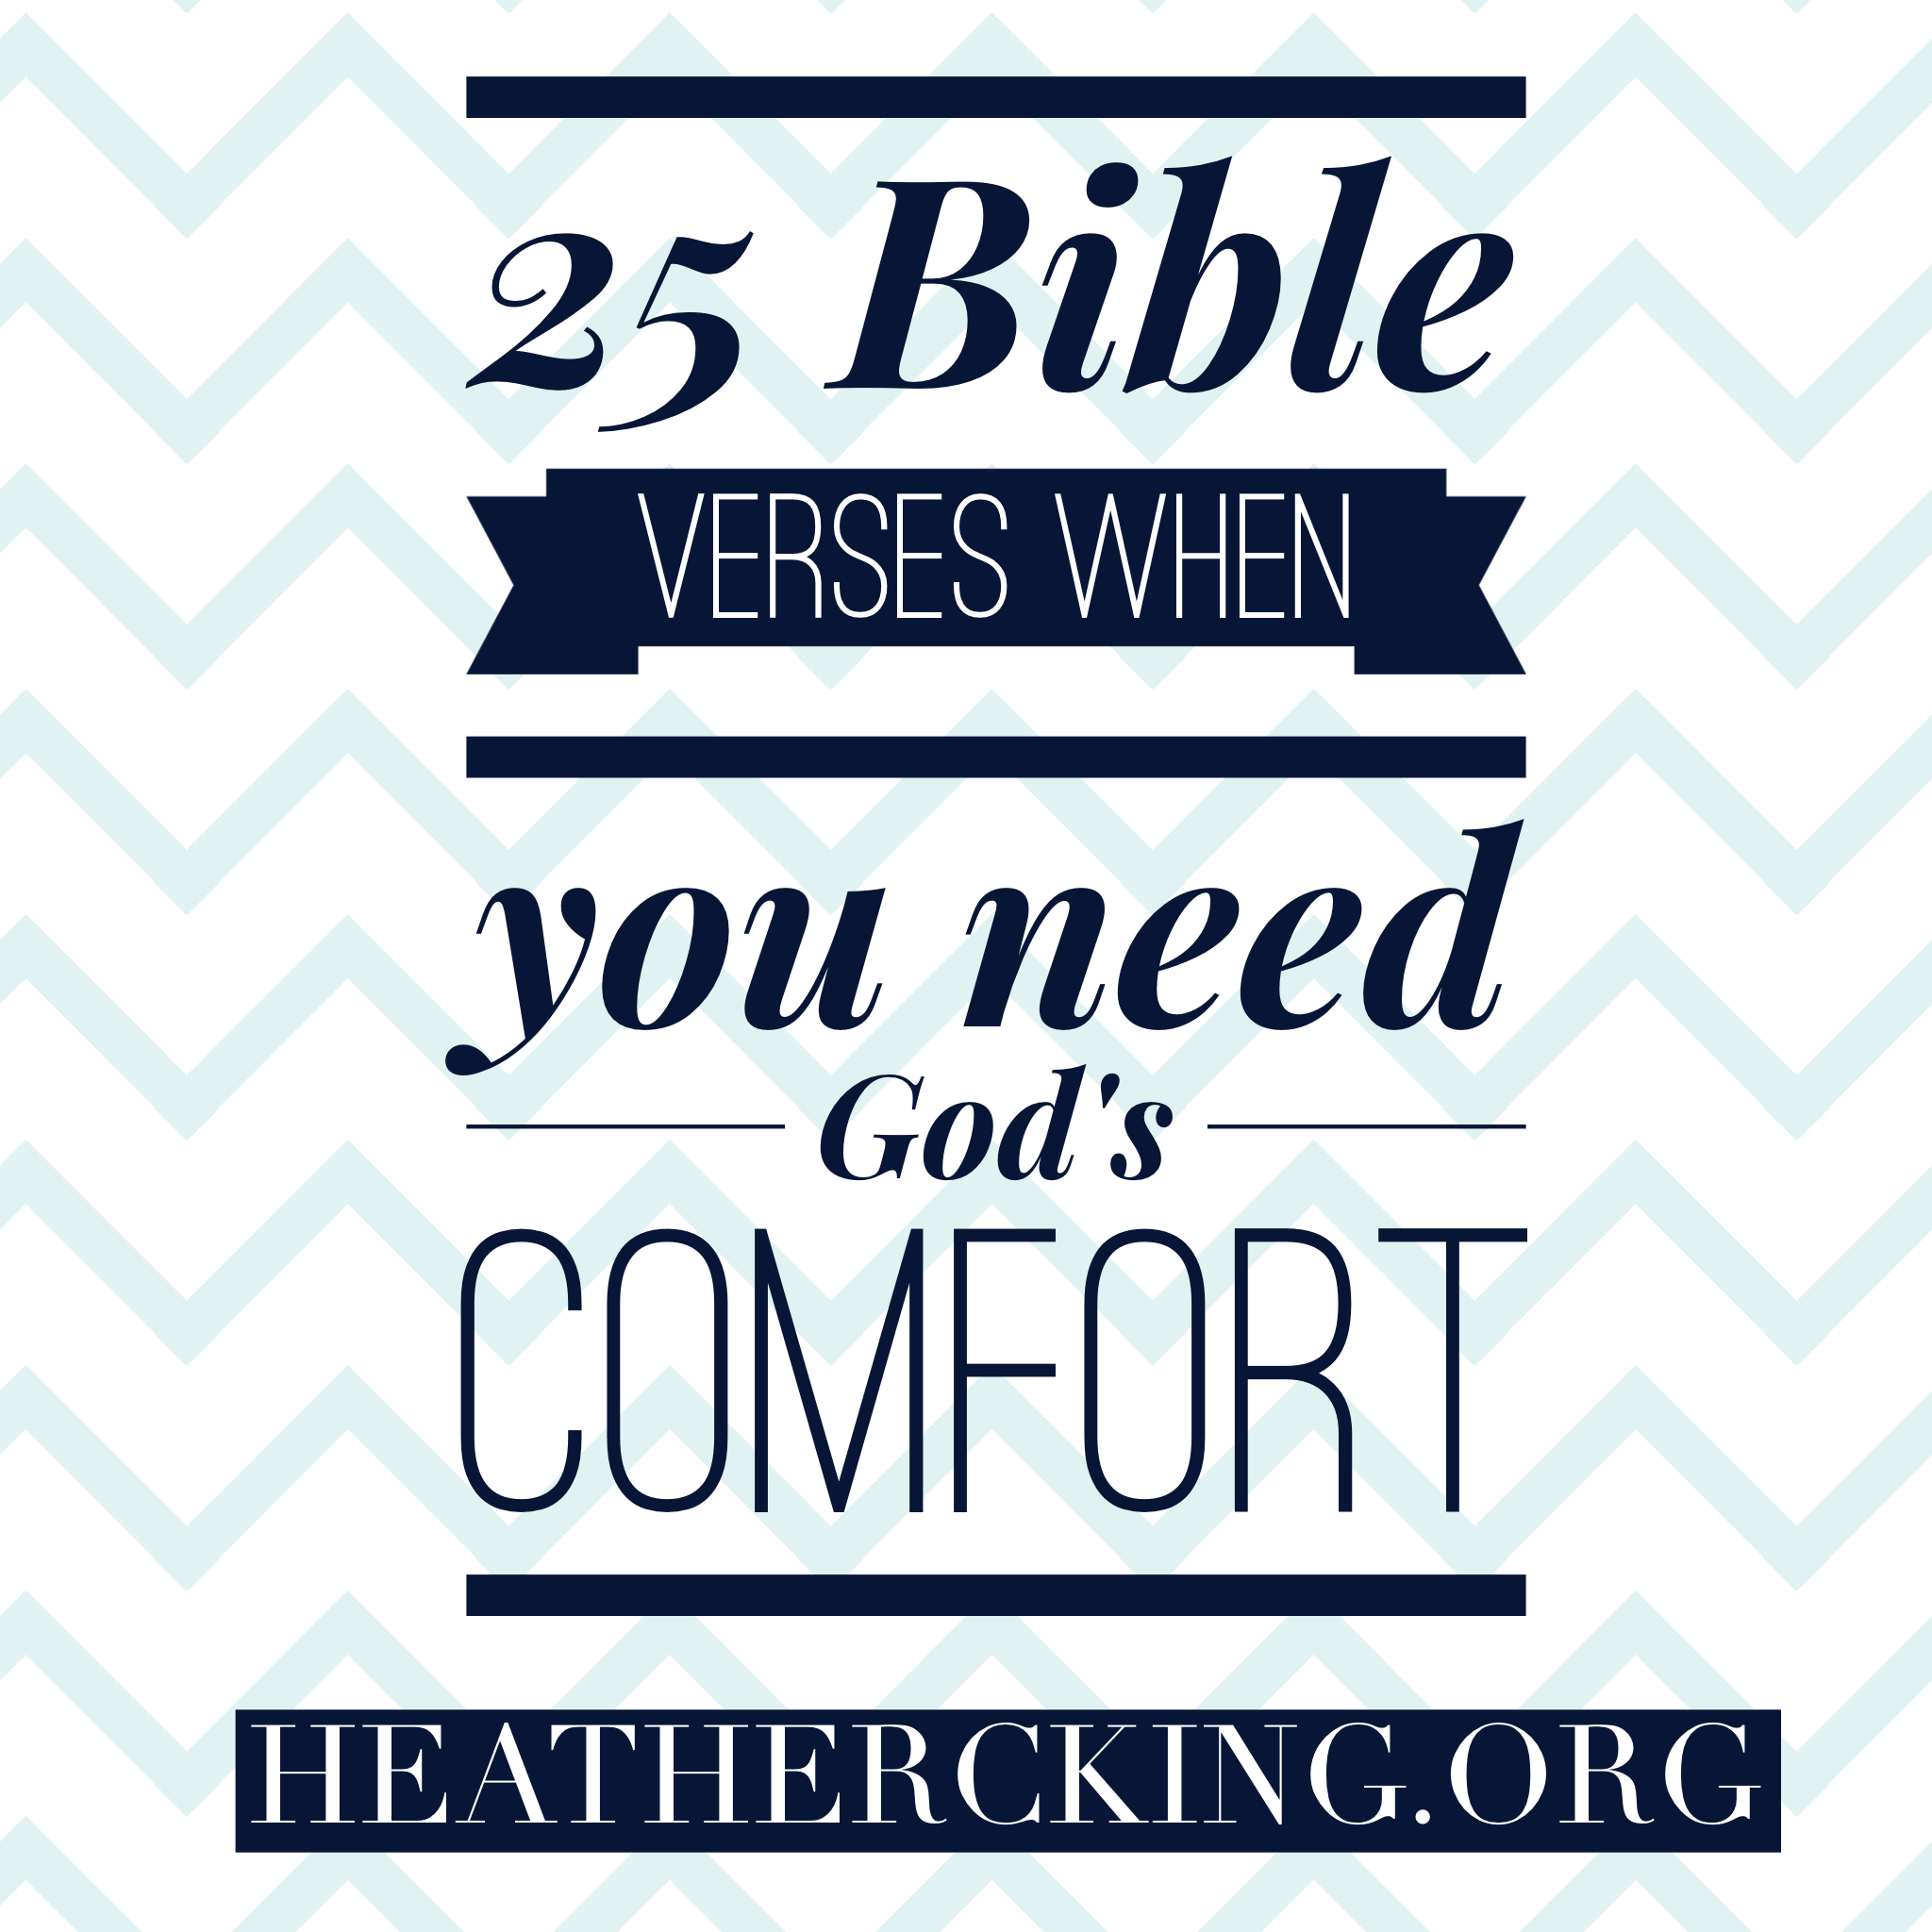 Comforting in dating biblically